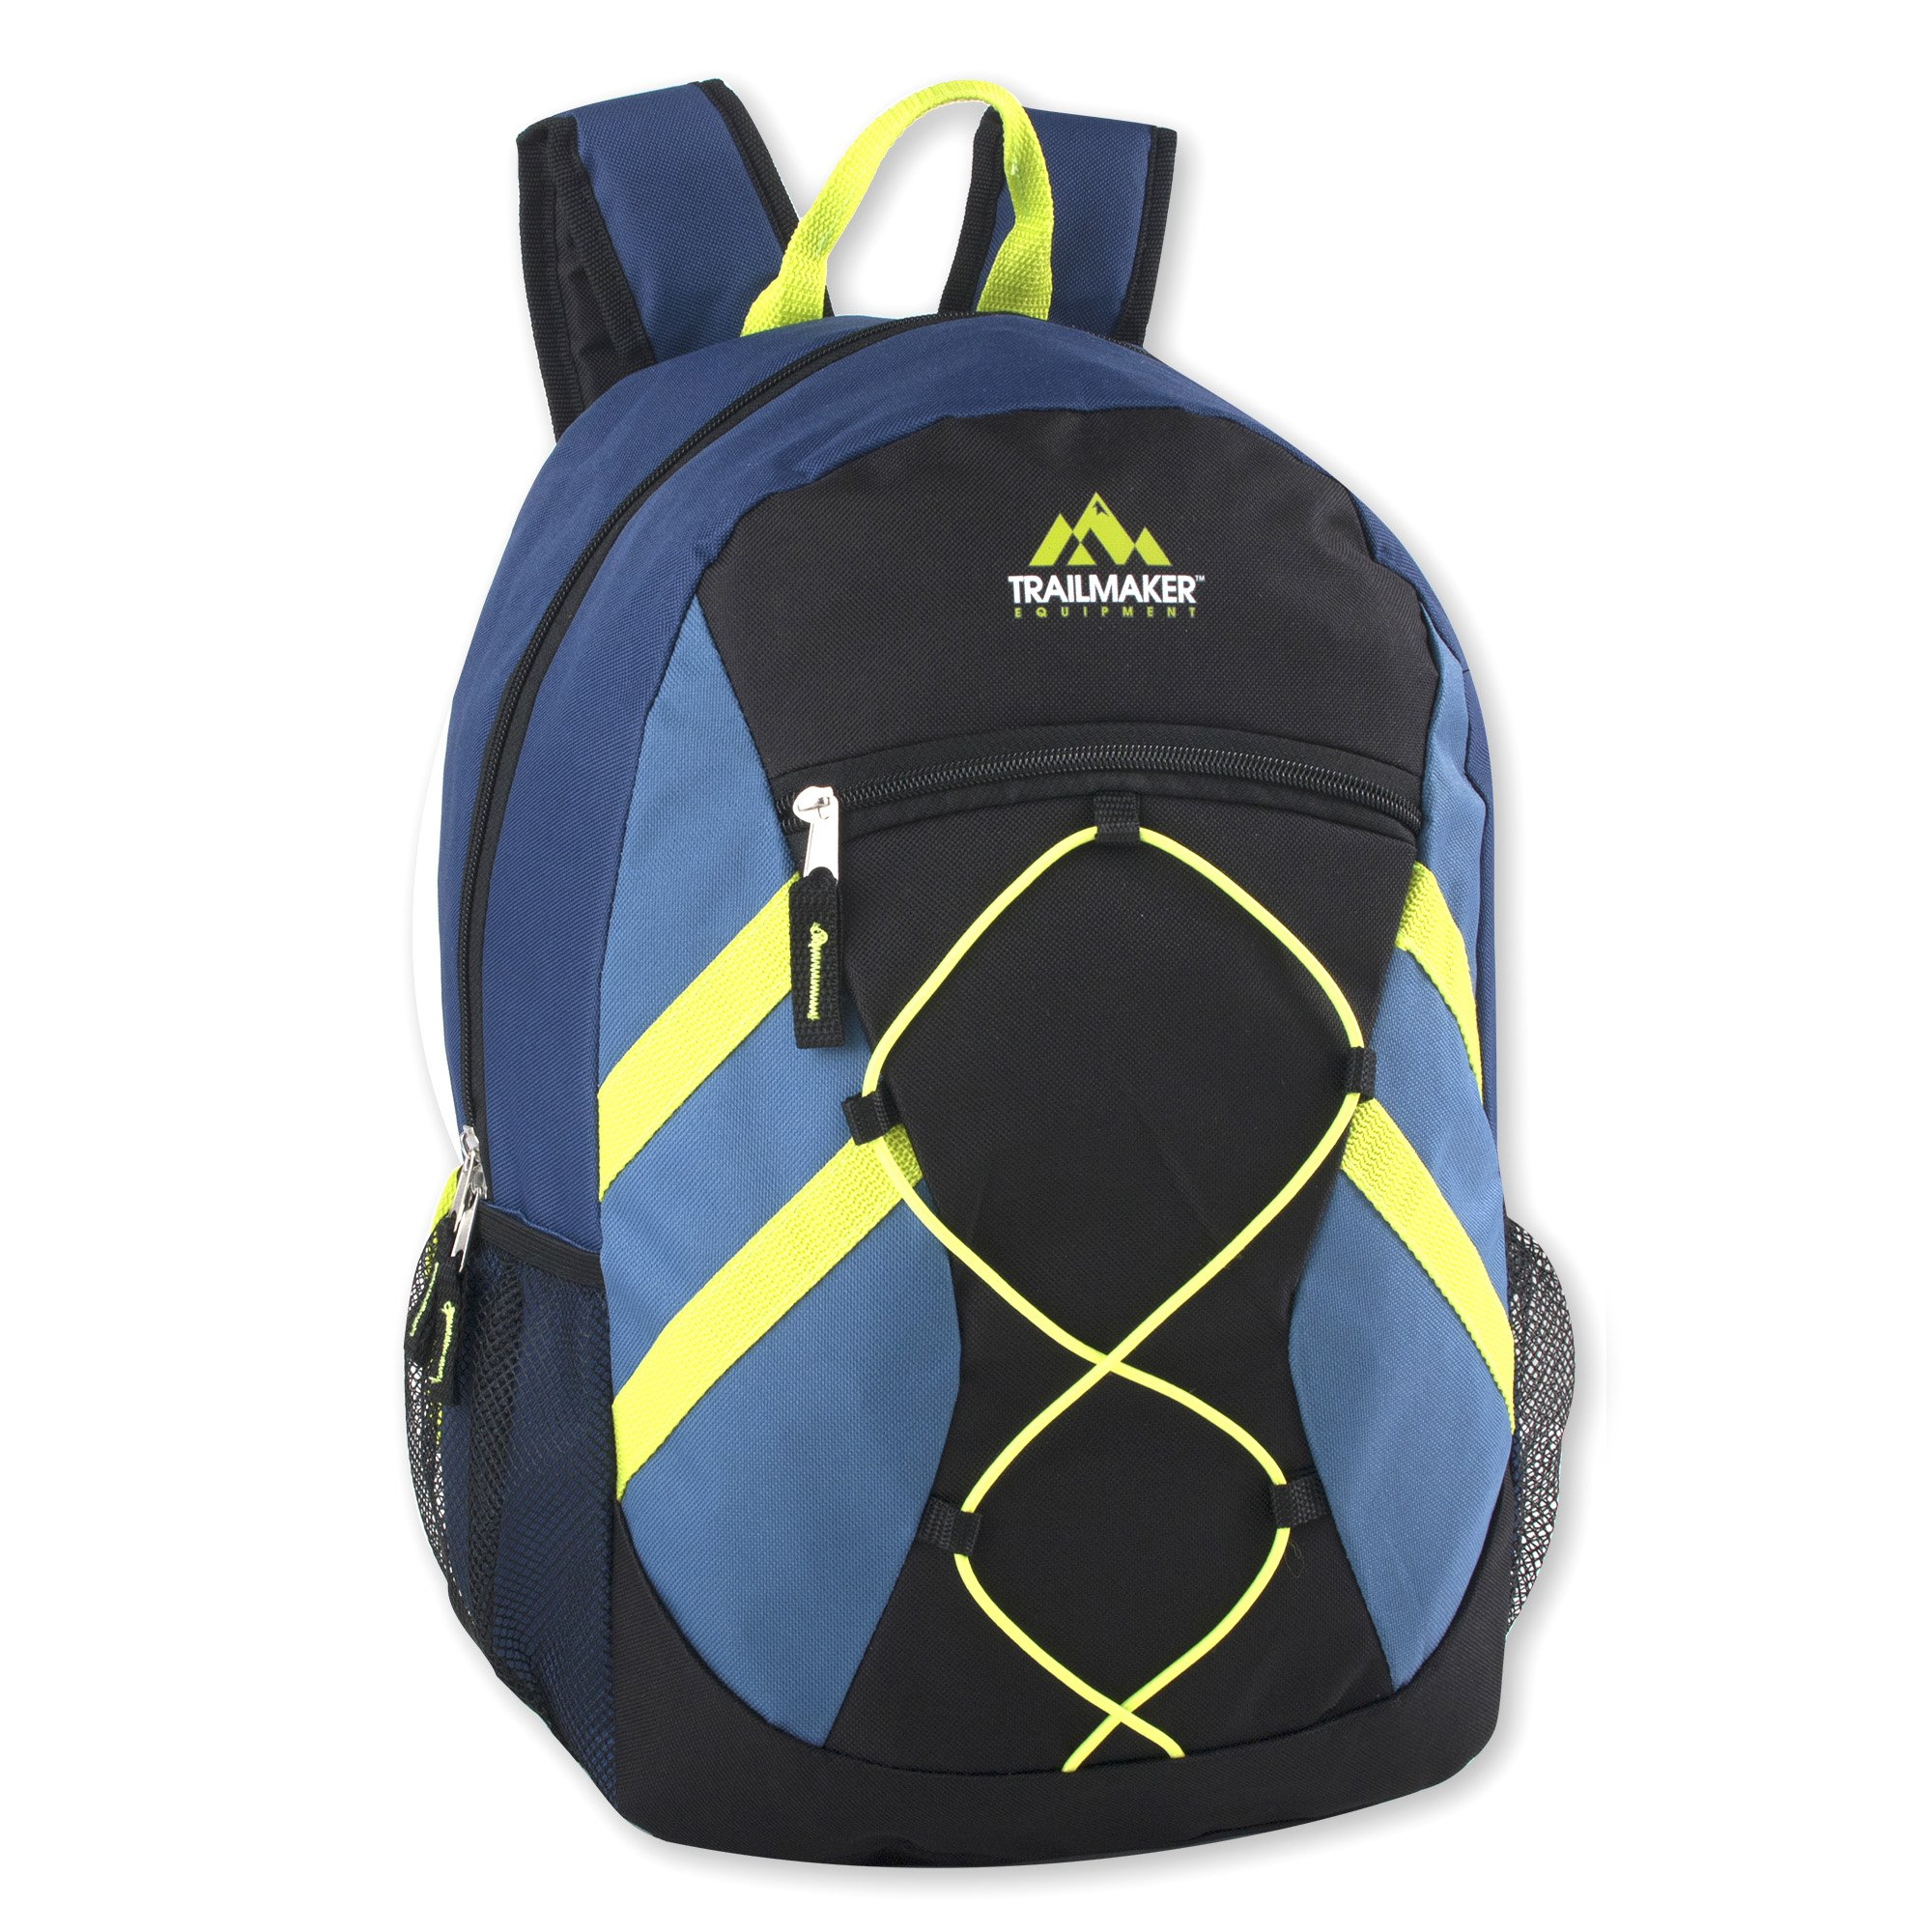 Trailmaker Full Size 17 Inch Bungee Backpack With Mesh Side Pockets (Blue)